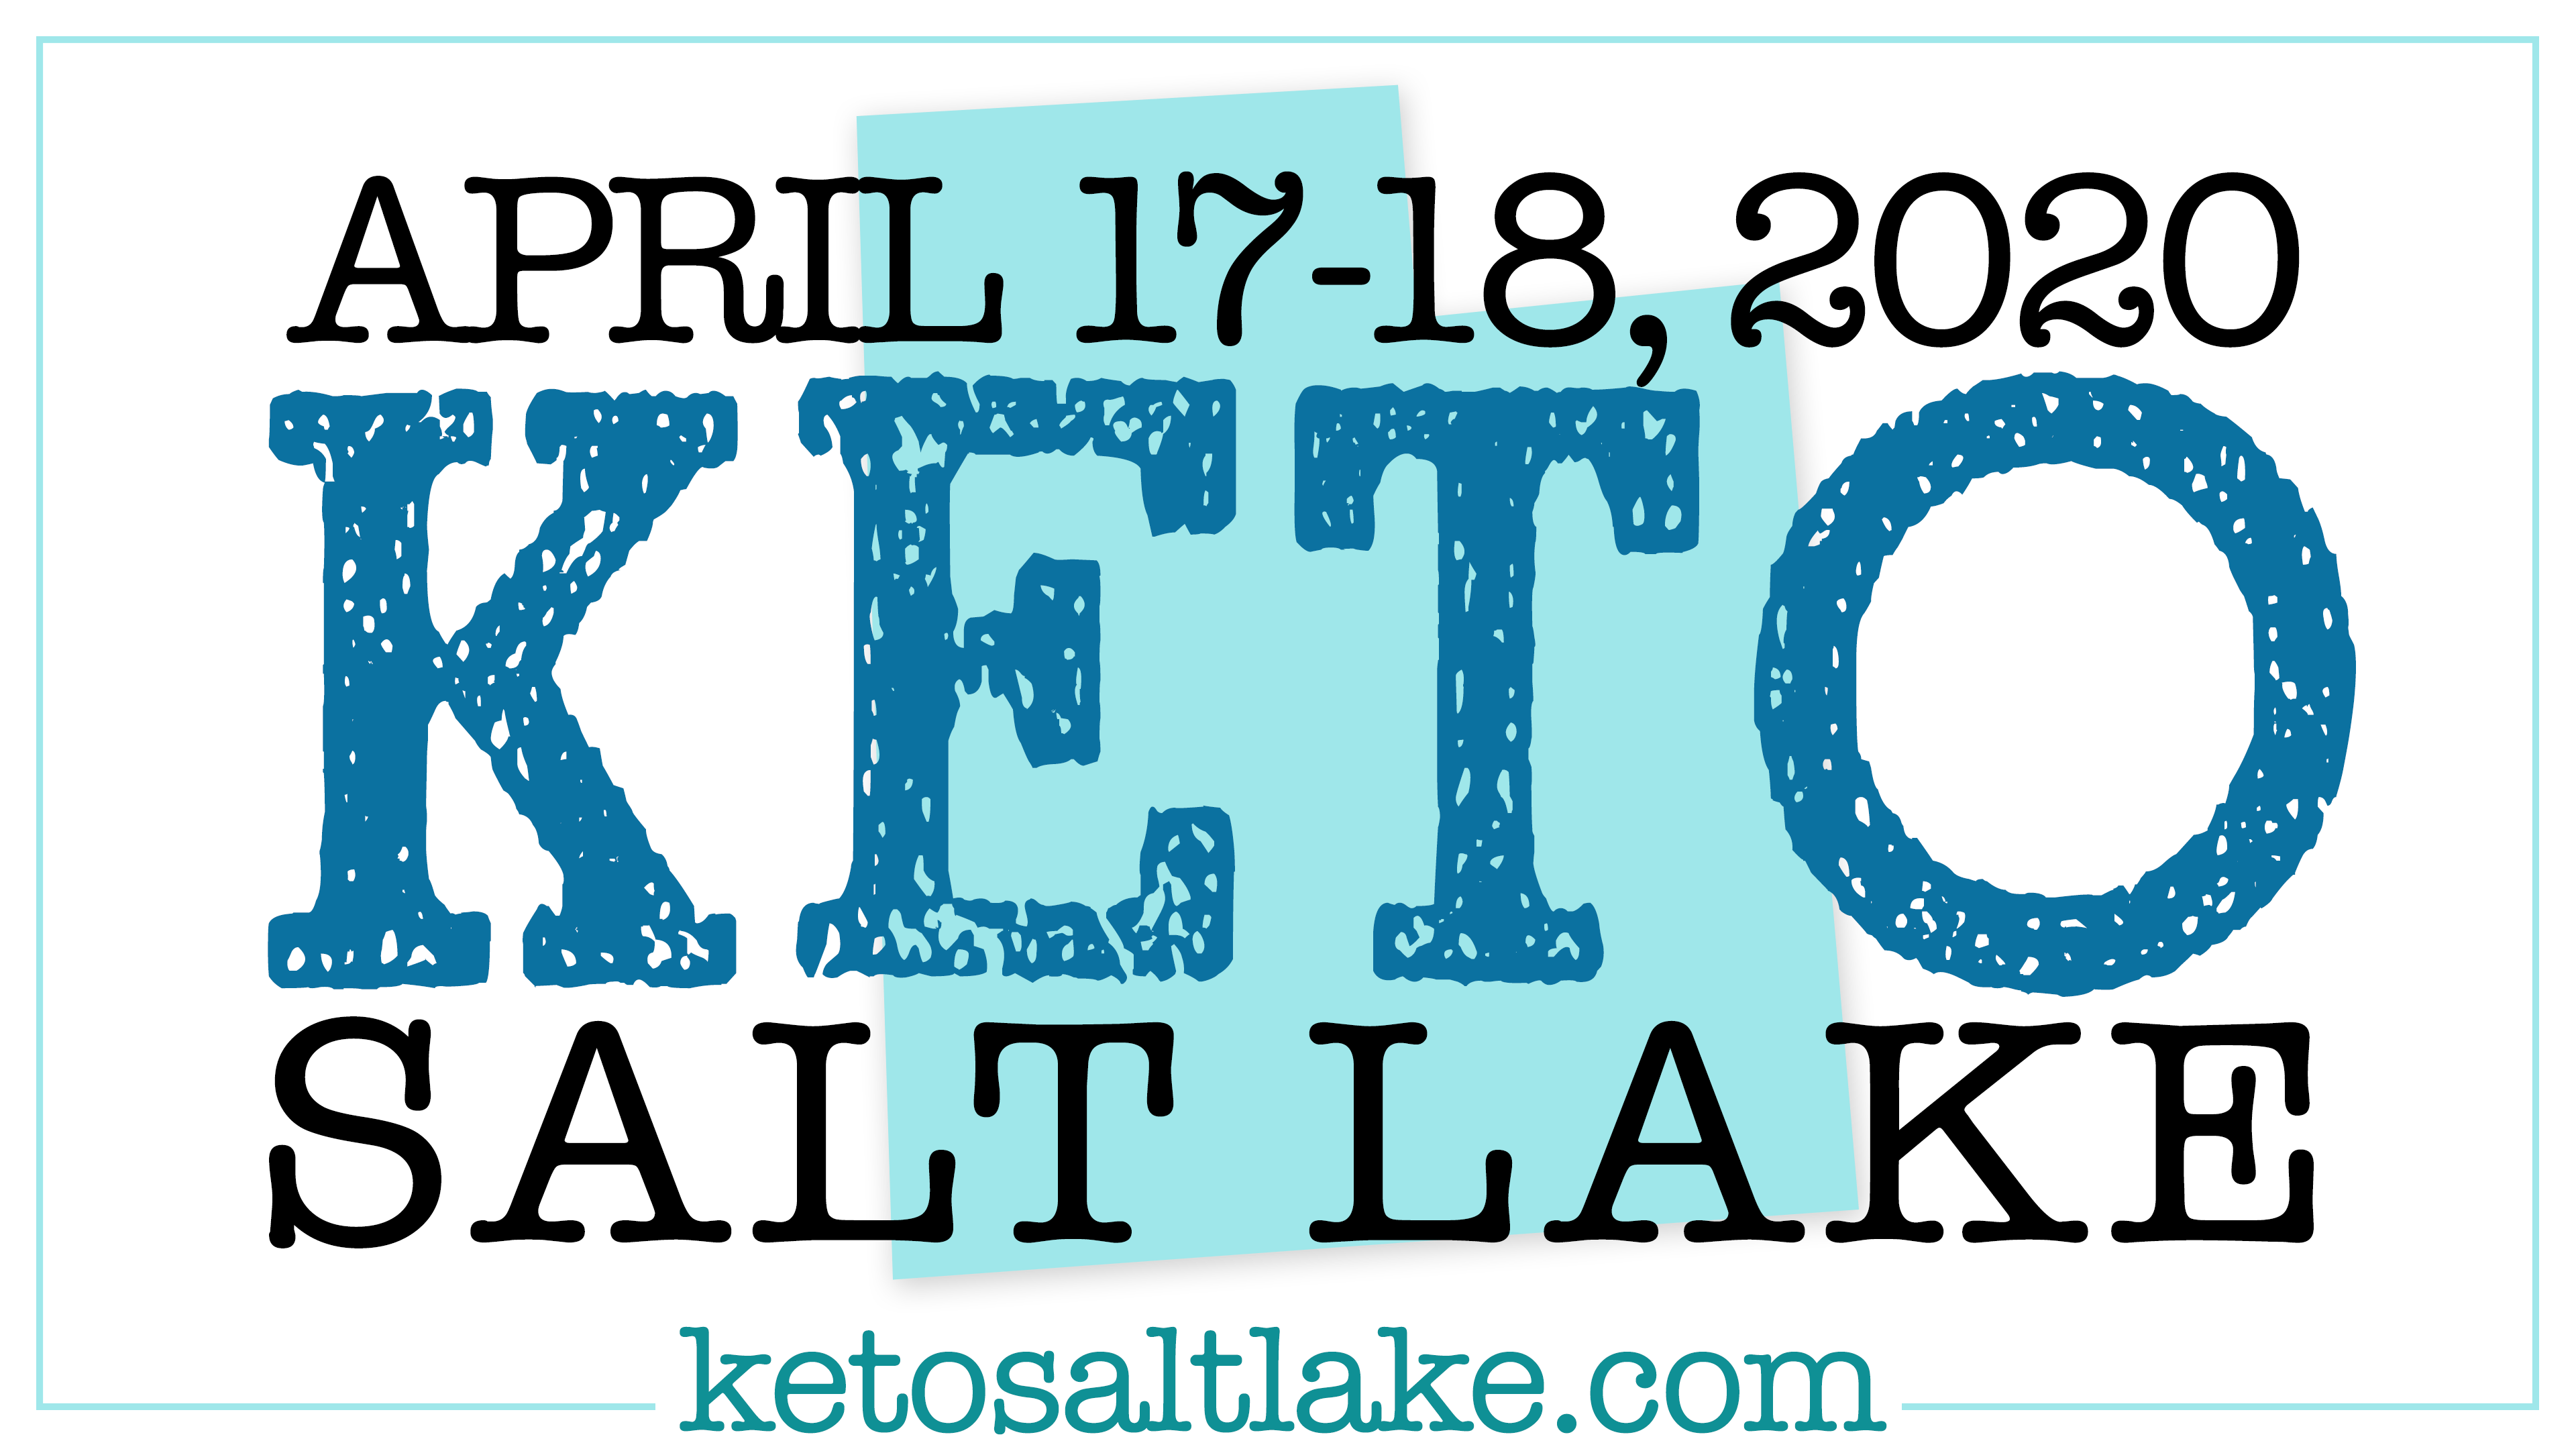 Keto Salt Lake 2020